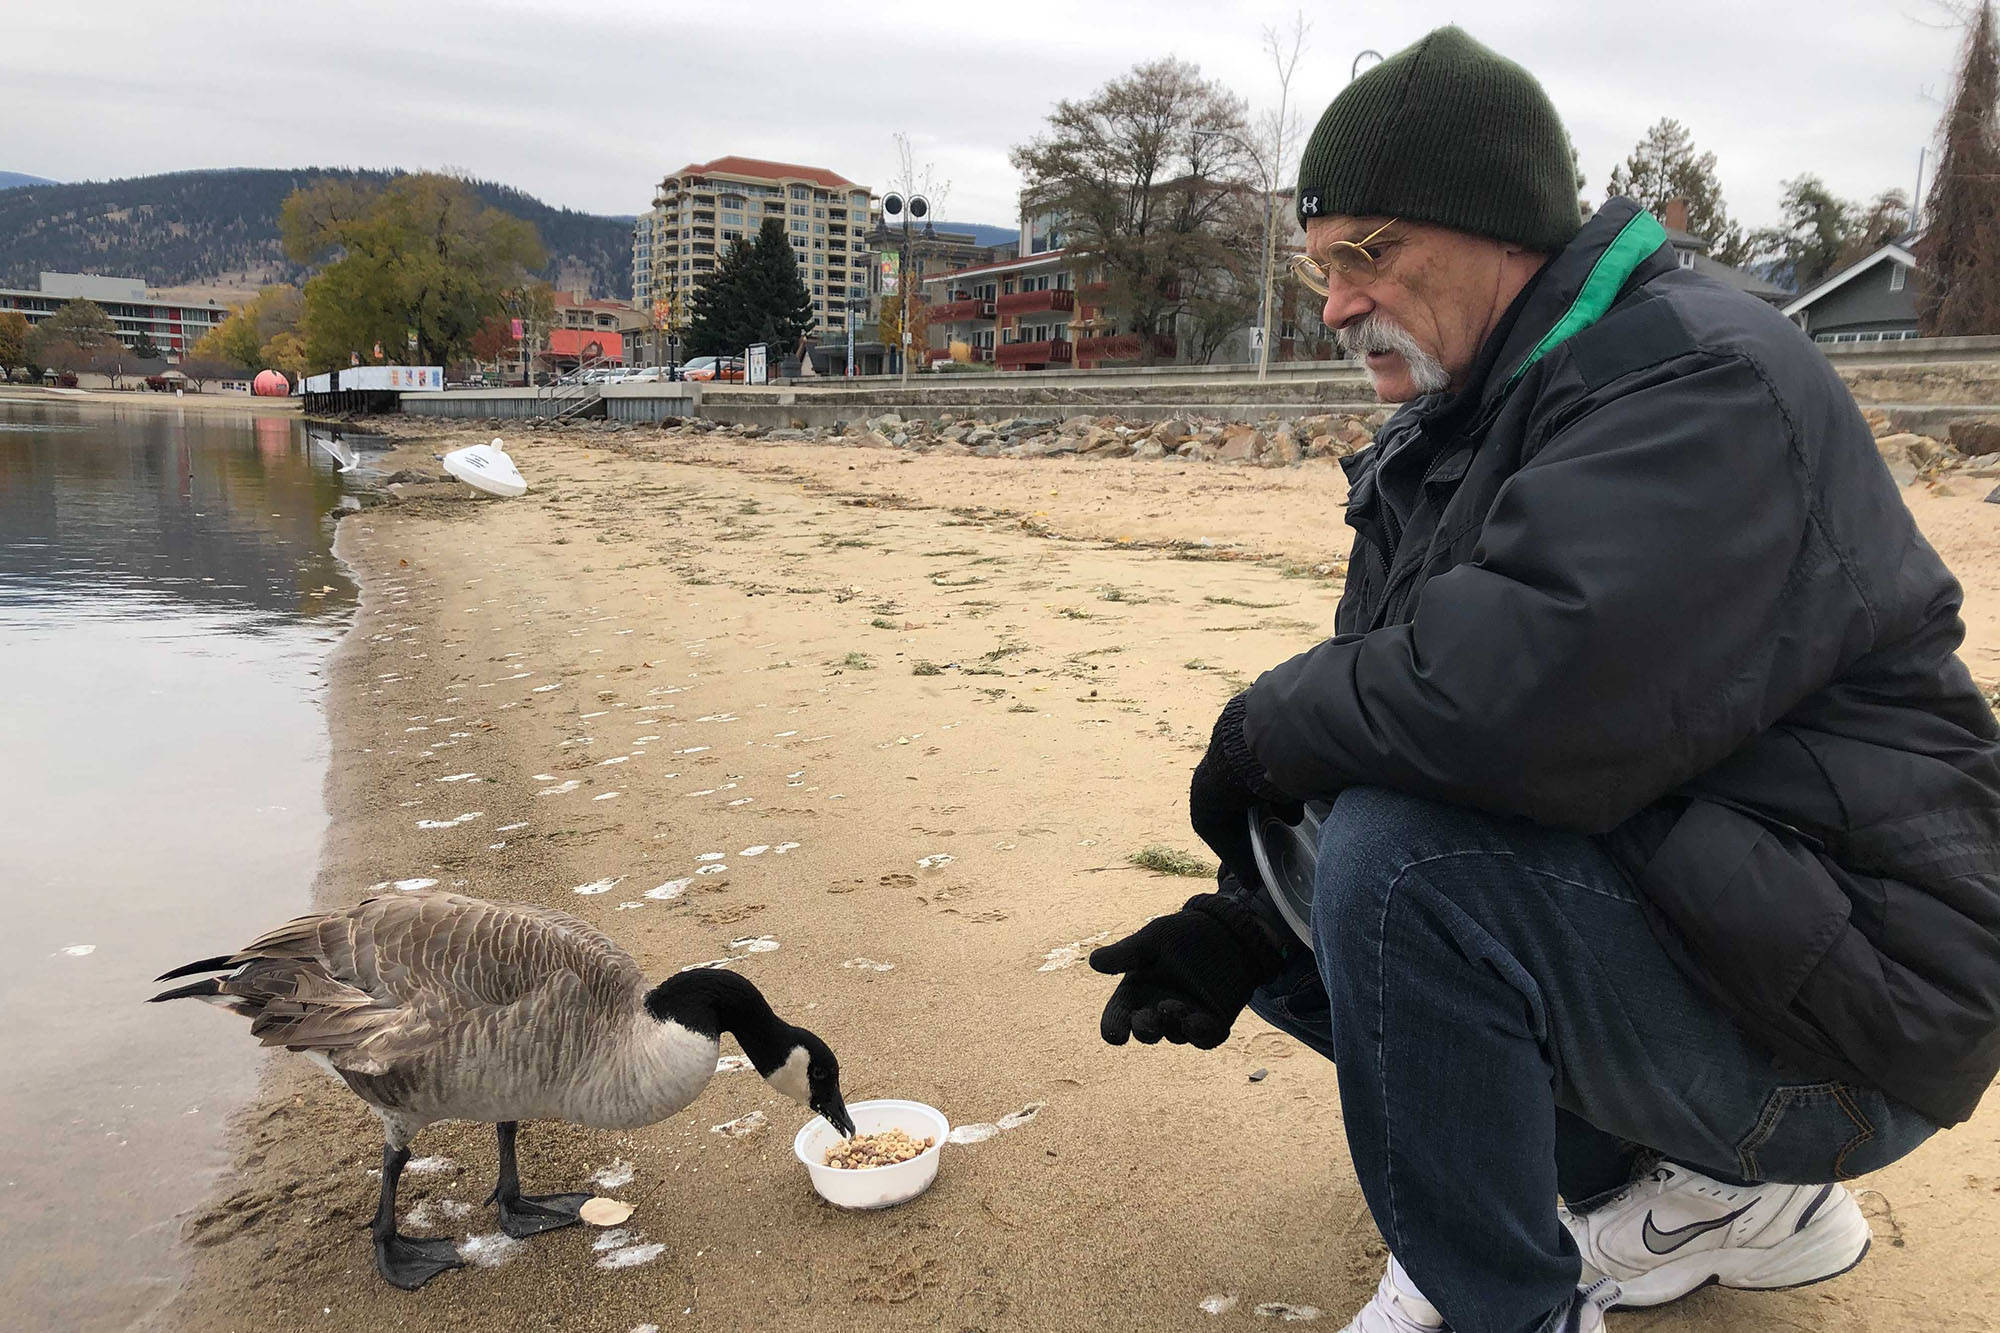 Dave Chuokalos has been trying to rescue his feathered friend - Kevin the goose - before the ice sets on Okanagan Lake. So far, Kevin has evaded capture. (Monique Tamminga - Western News)